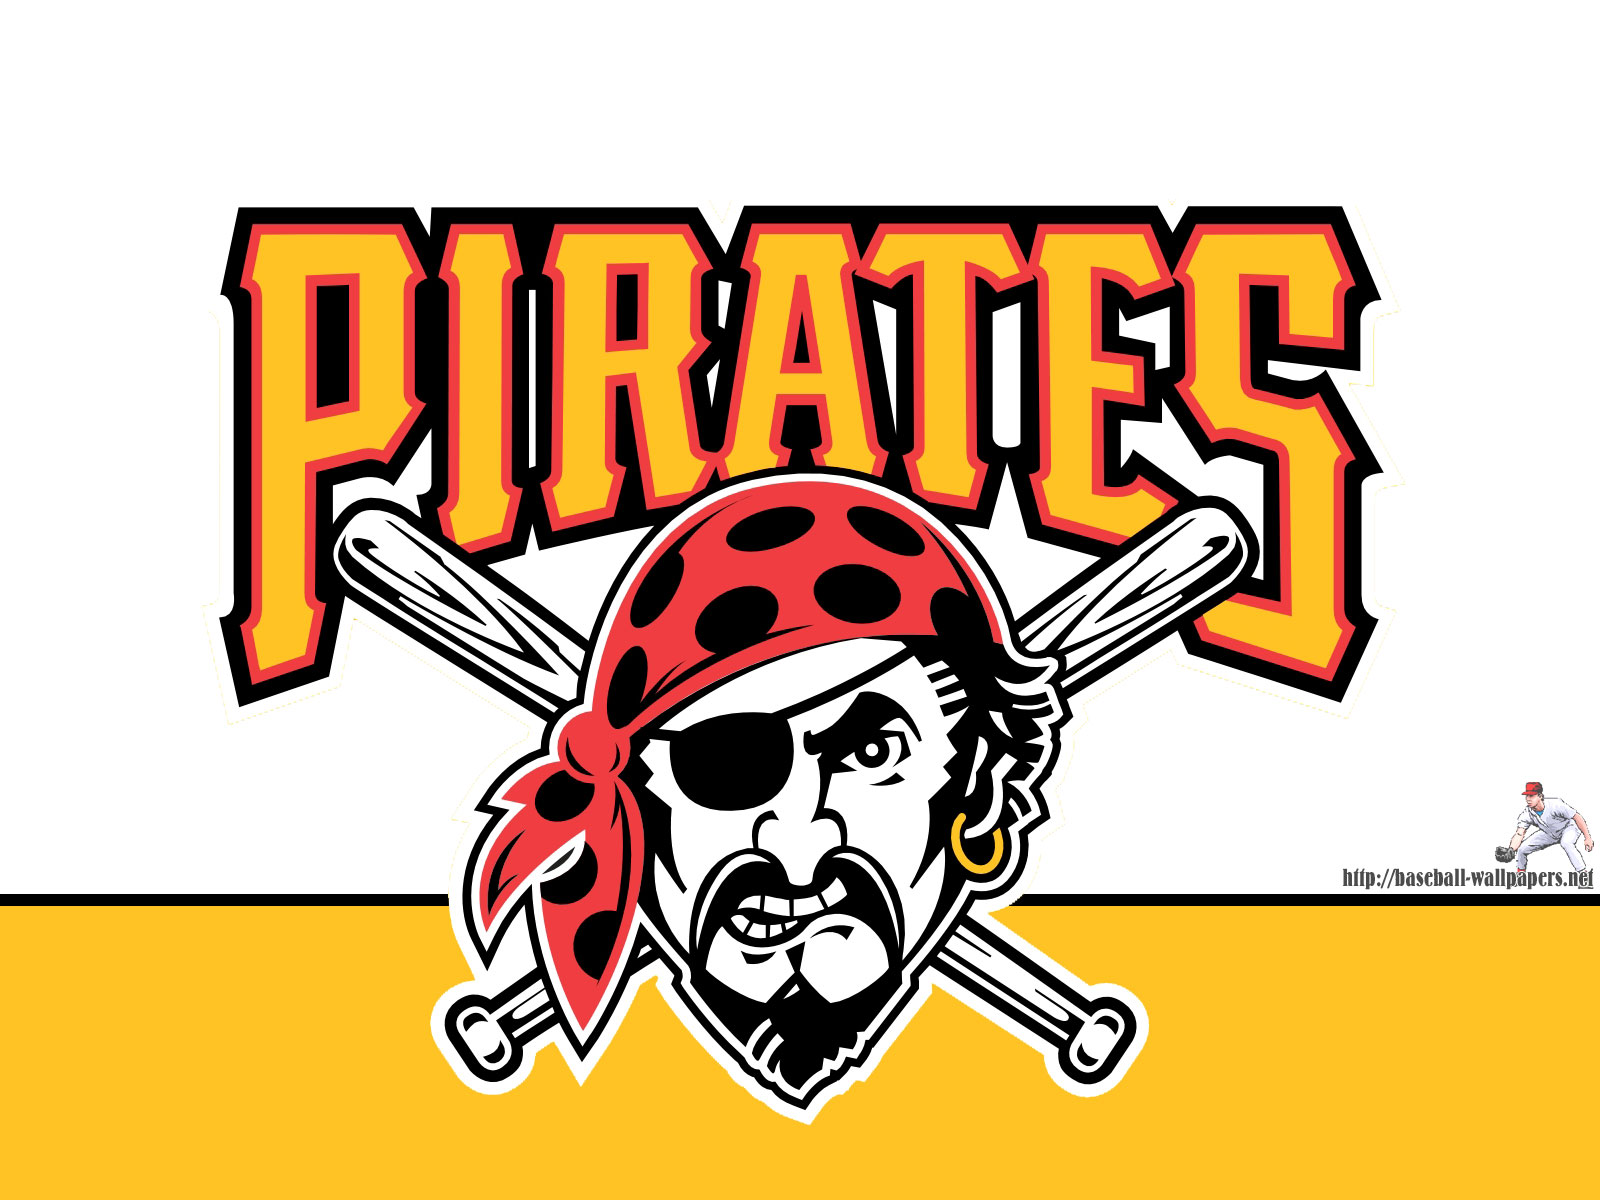 PITTSBURGH PIRATES baseball mlb dj wallpaper background 1600x1200